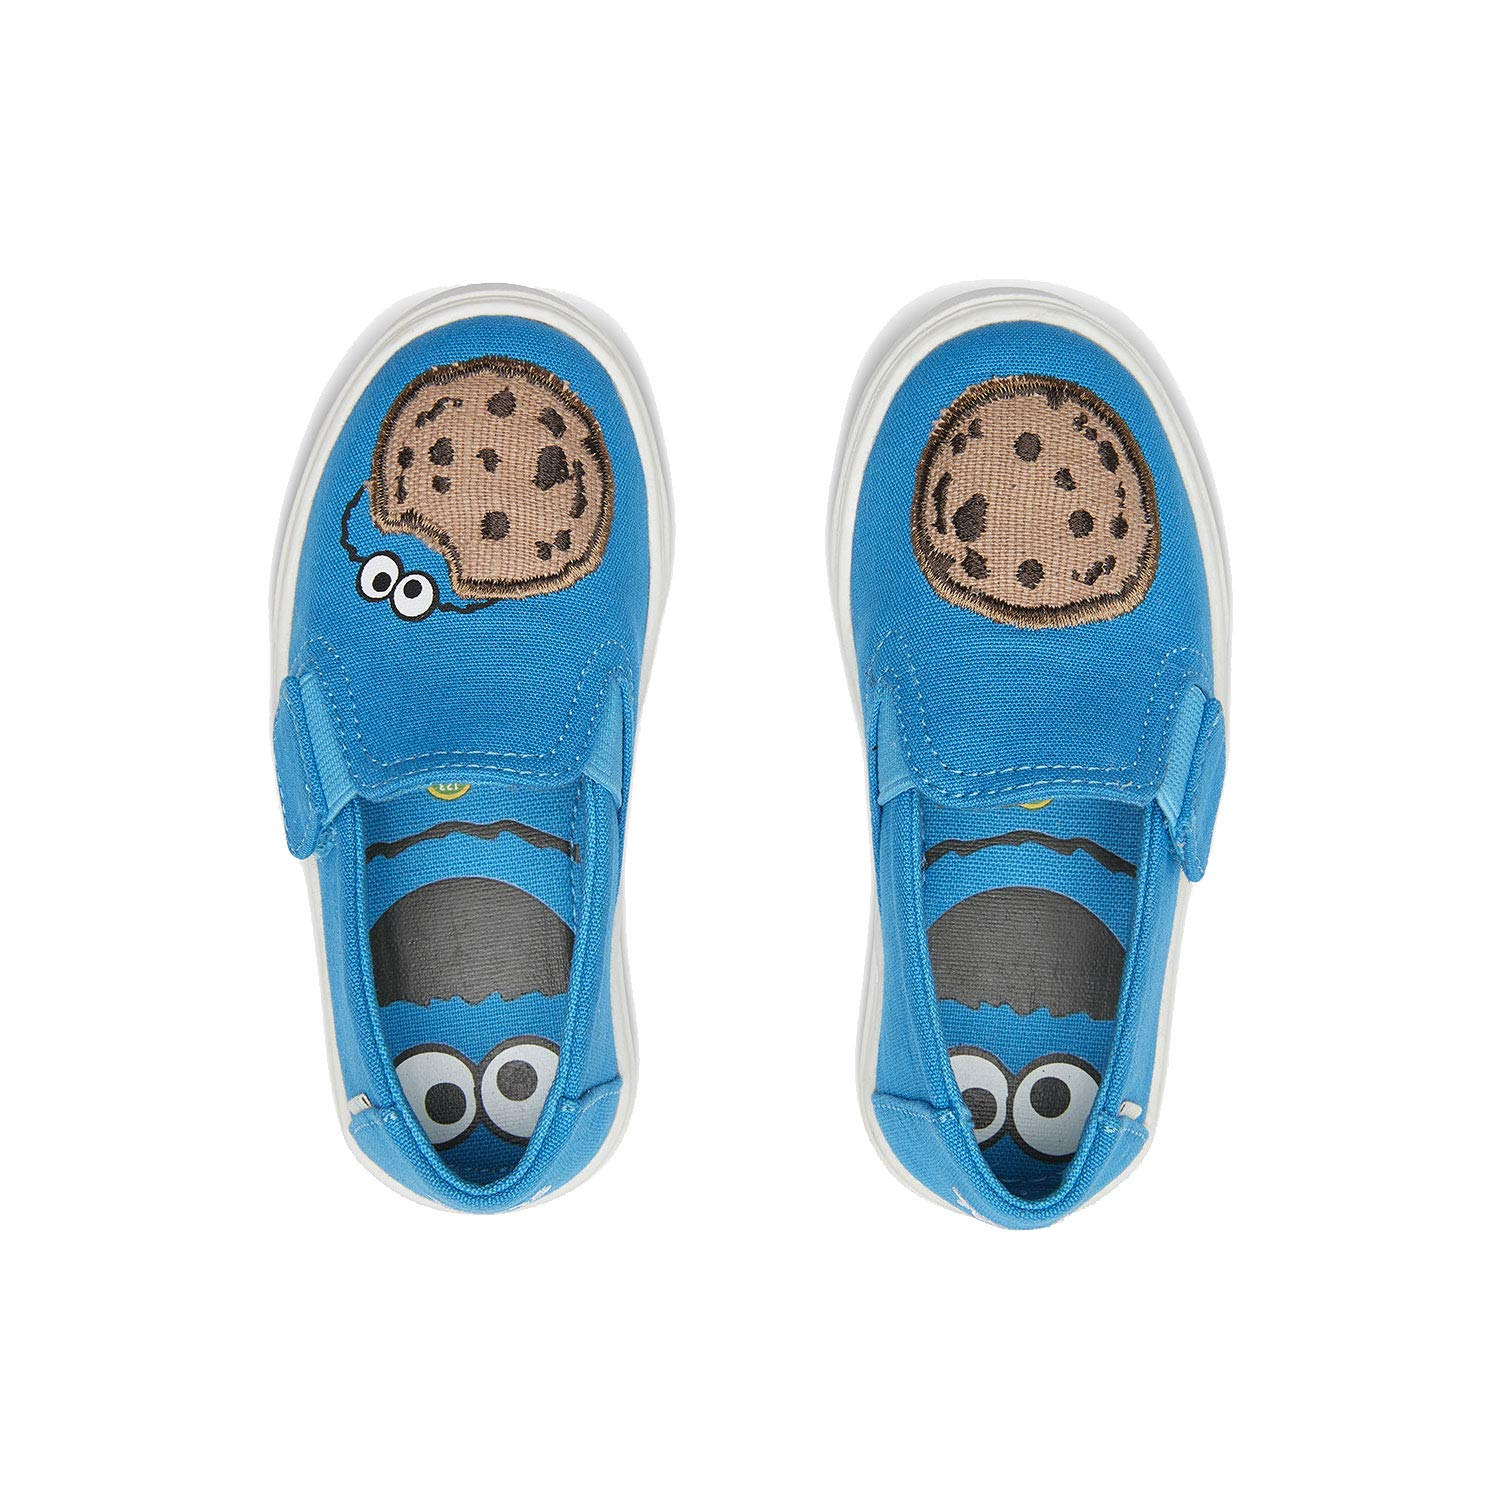 TOMS Sesame Street X Cookie Monster Applique Tiny Luca Slip-Ons 10013646 (Size: 9) Blue by TOMS (Image #3)